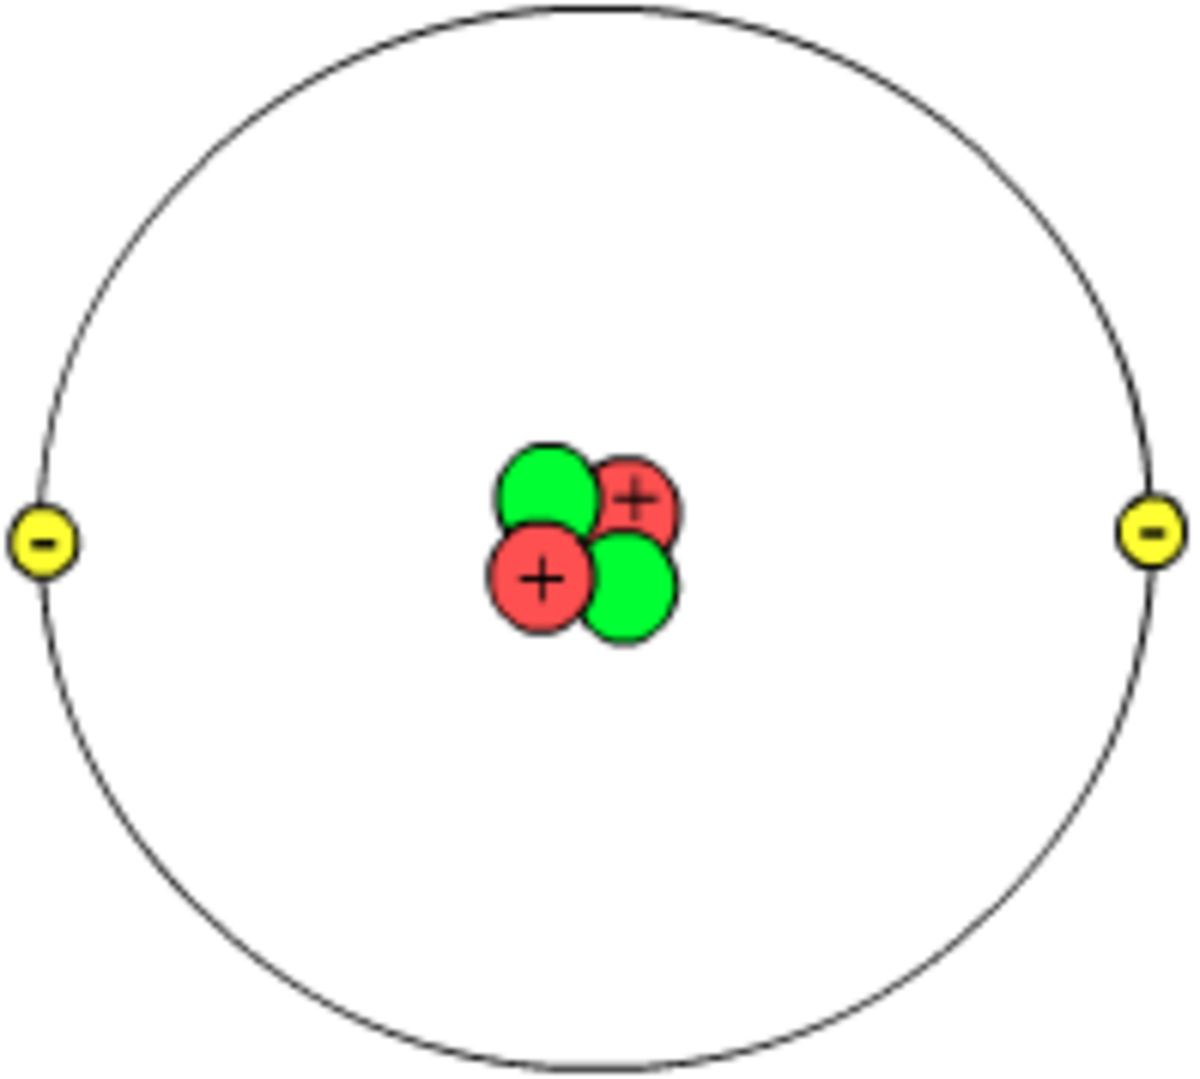 Modelisation of an atom of helium